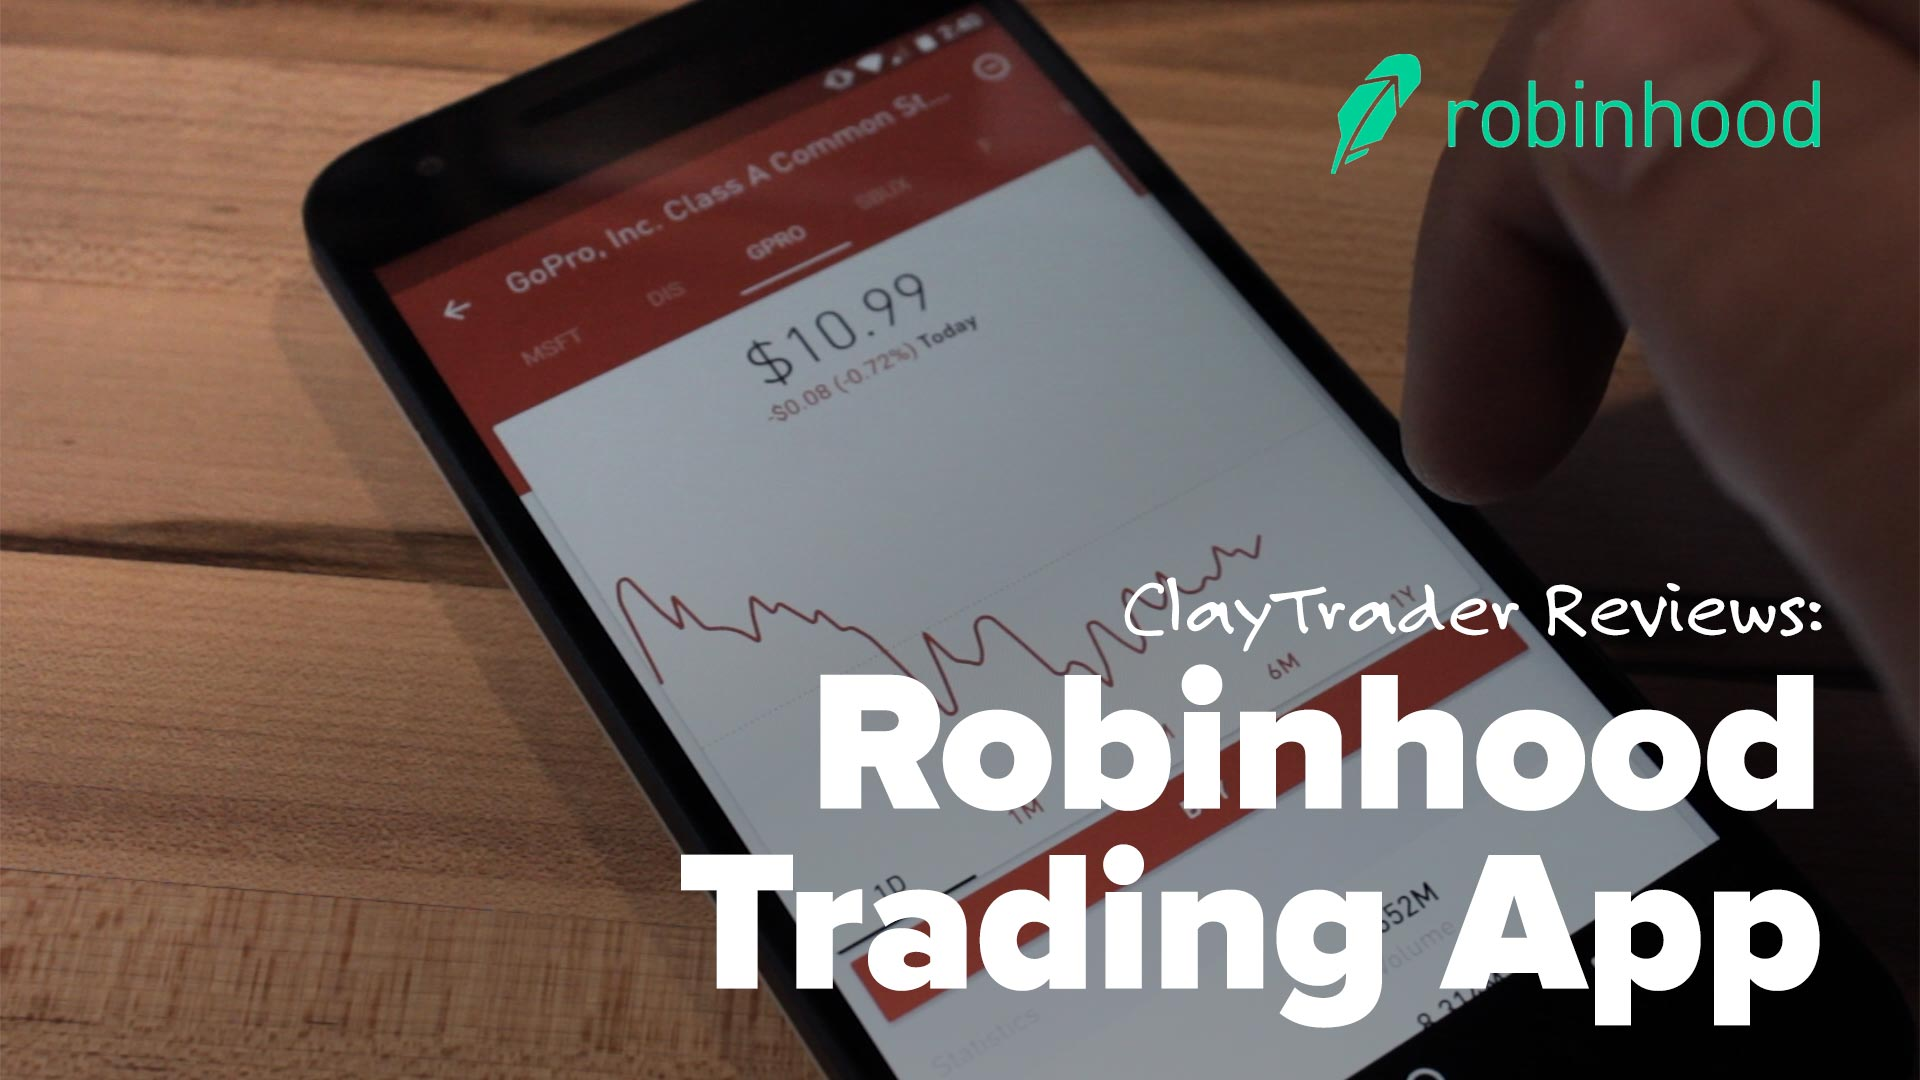 Robinhood Gold Pattern Day Trading